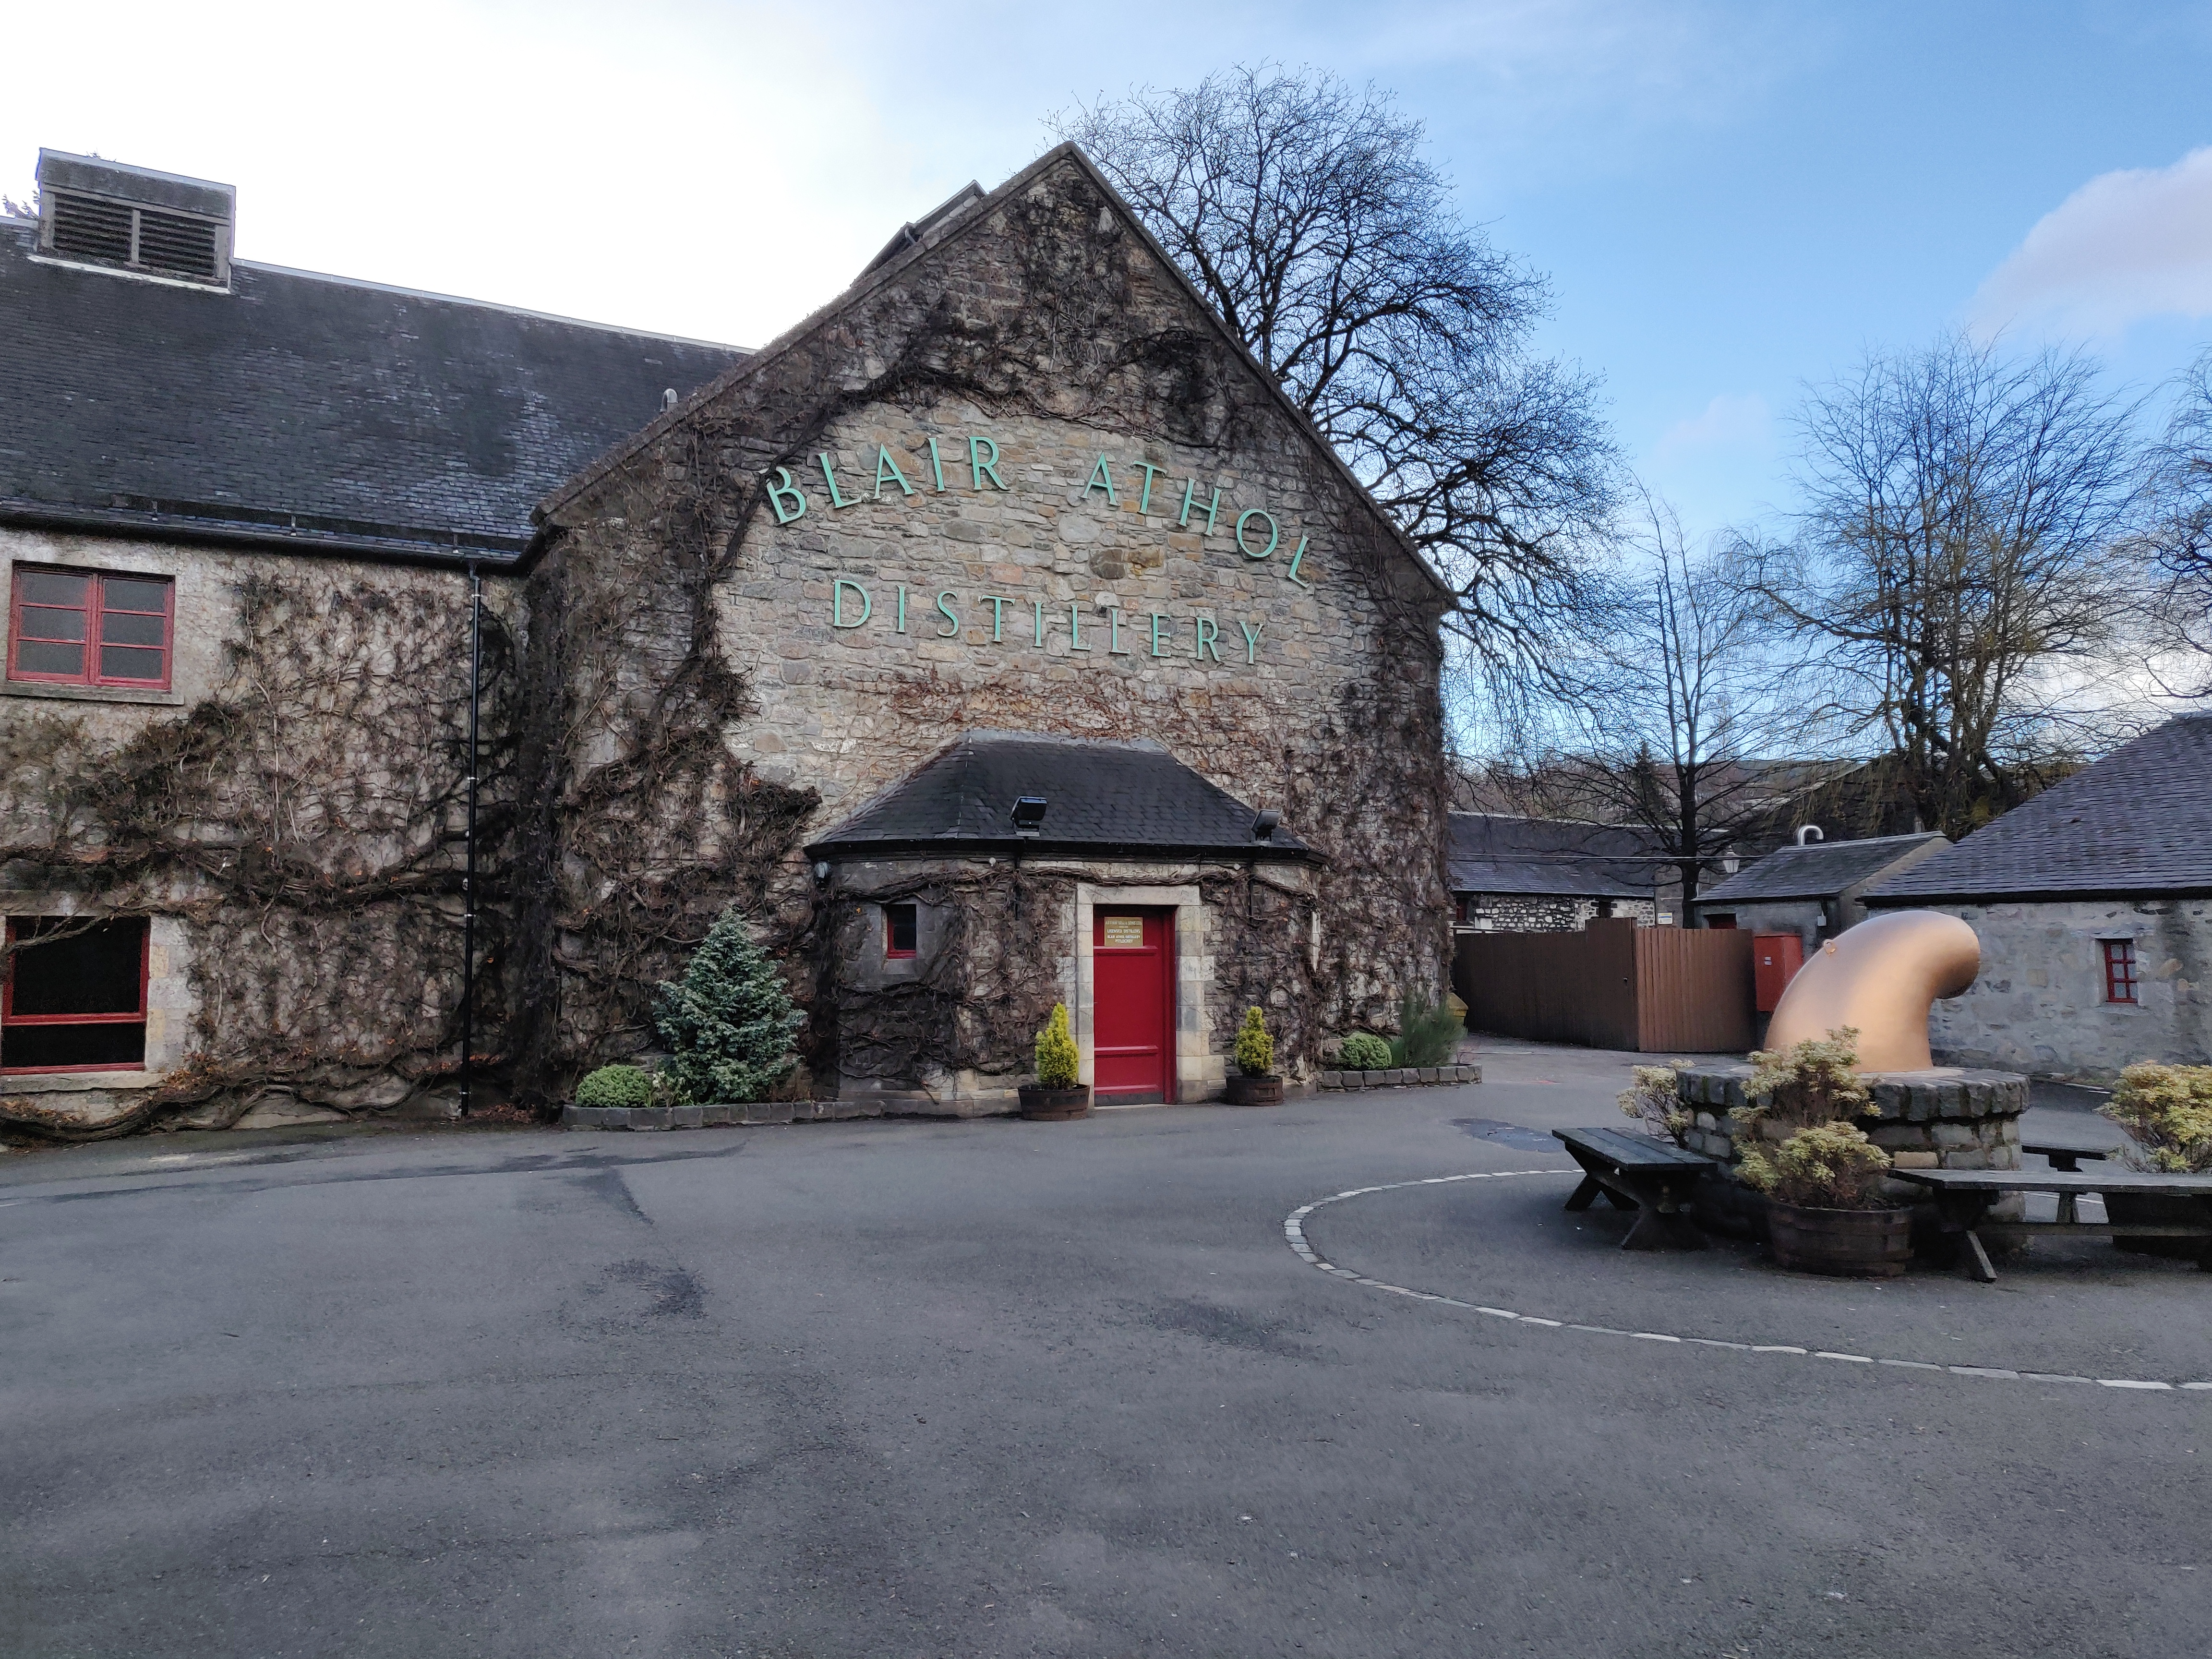 Picture of Blair Athol distillery.jpg